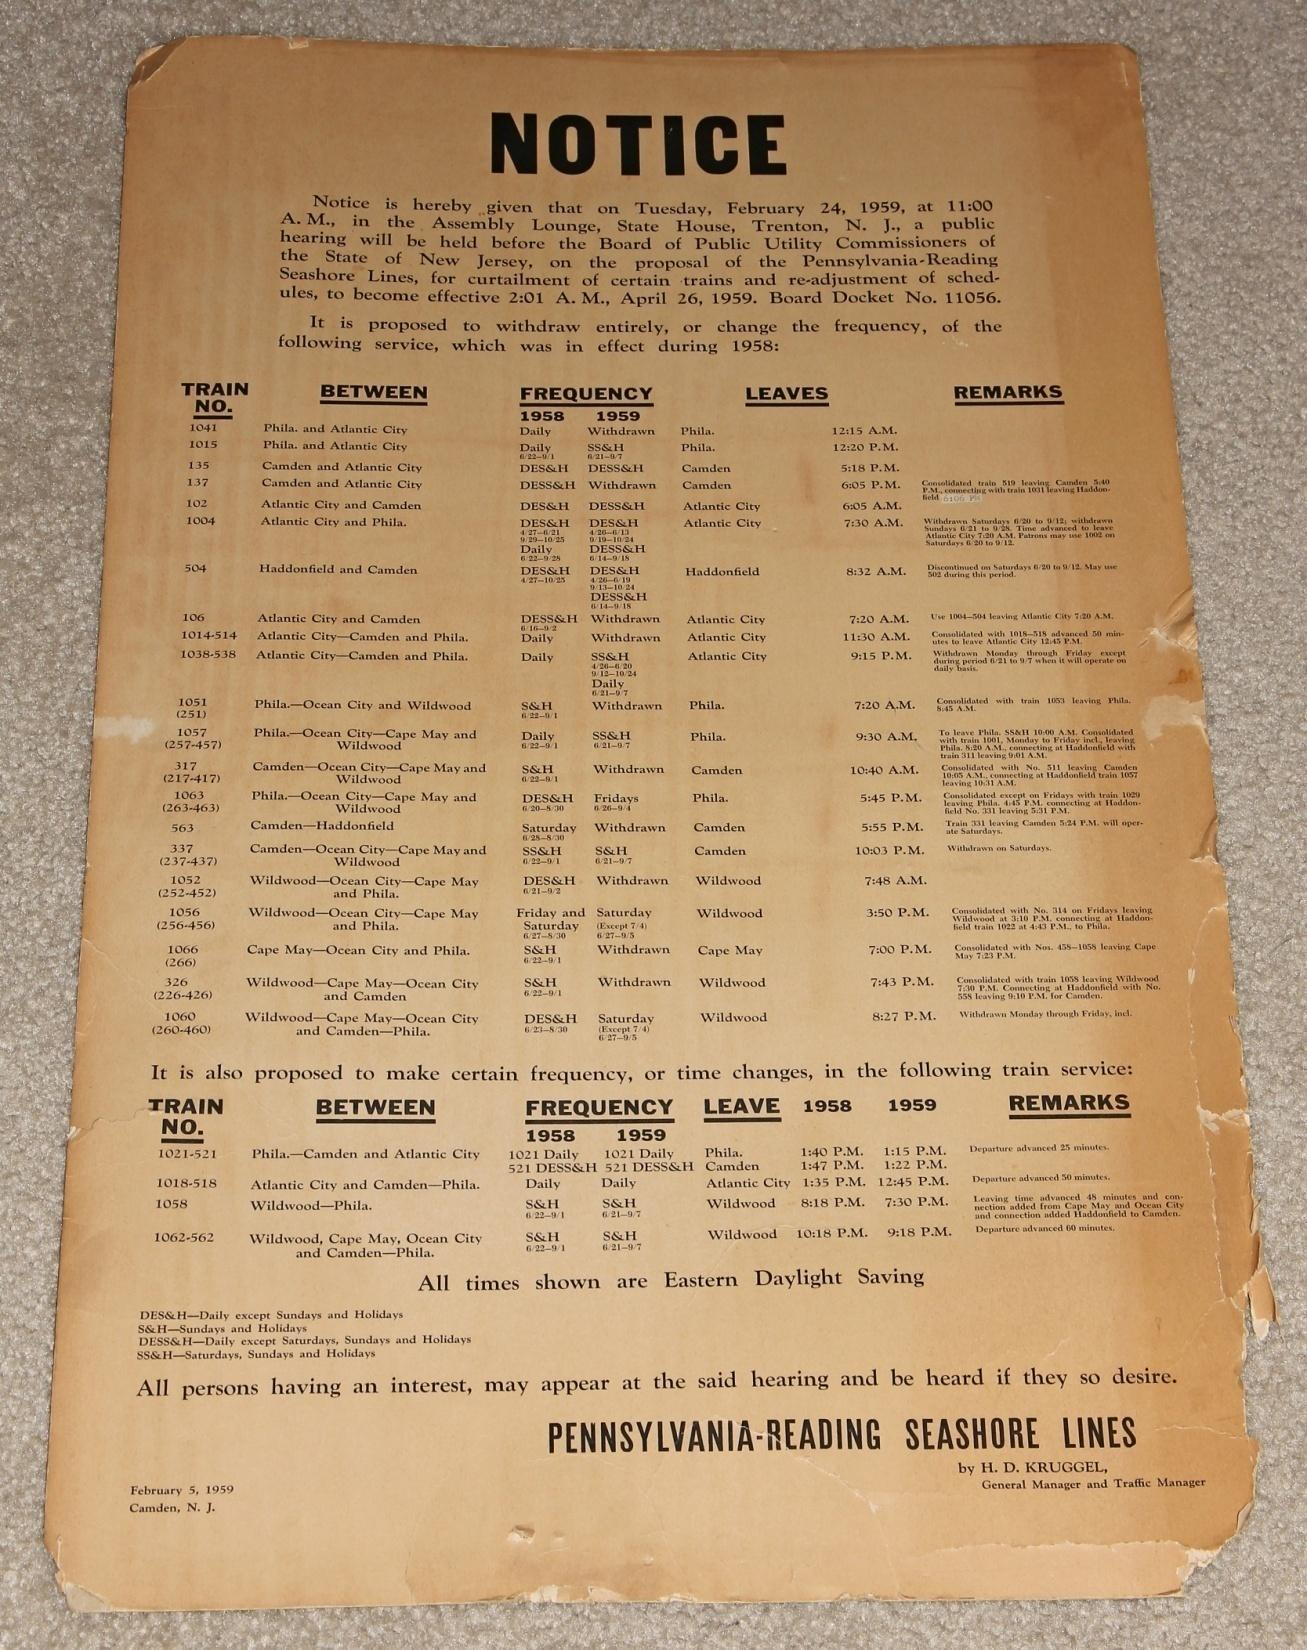 This February, 1959, notice, reflecting changes in Pennsylvania-Reading Seashore Lines train frequencies, is obviously deteriorated. These were never intended to last a long time. The railroad was frugal, and reused this notice as a sign.